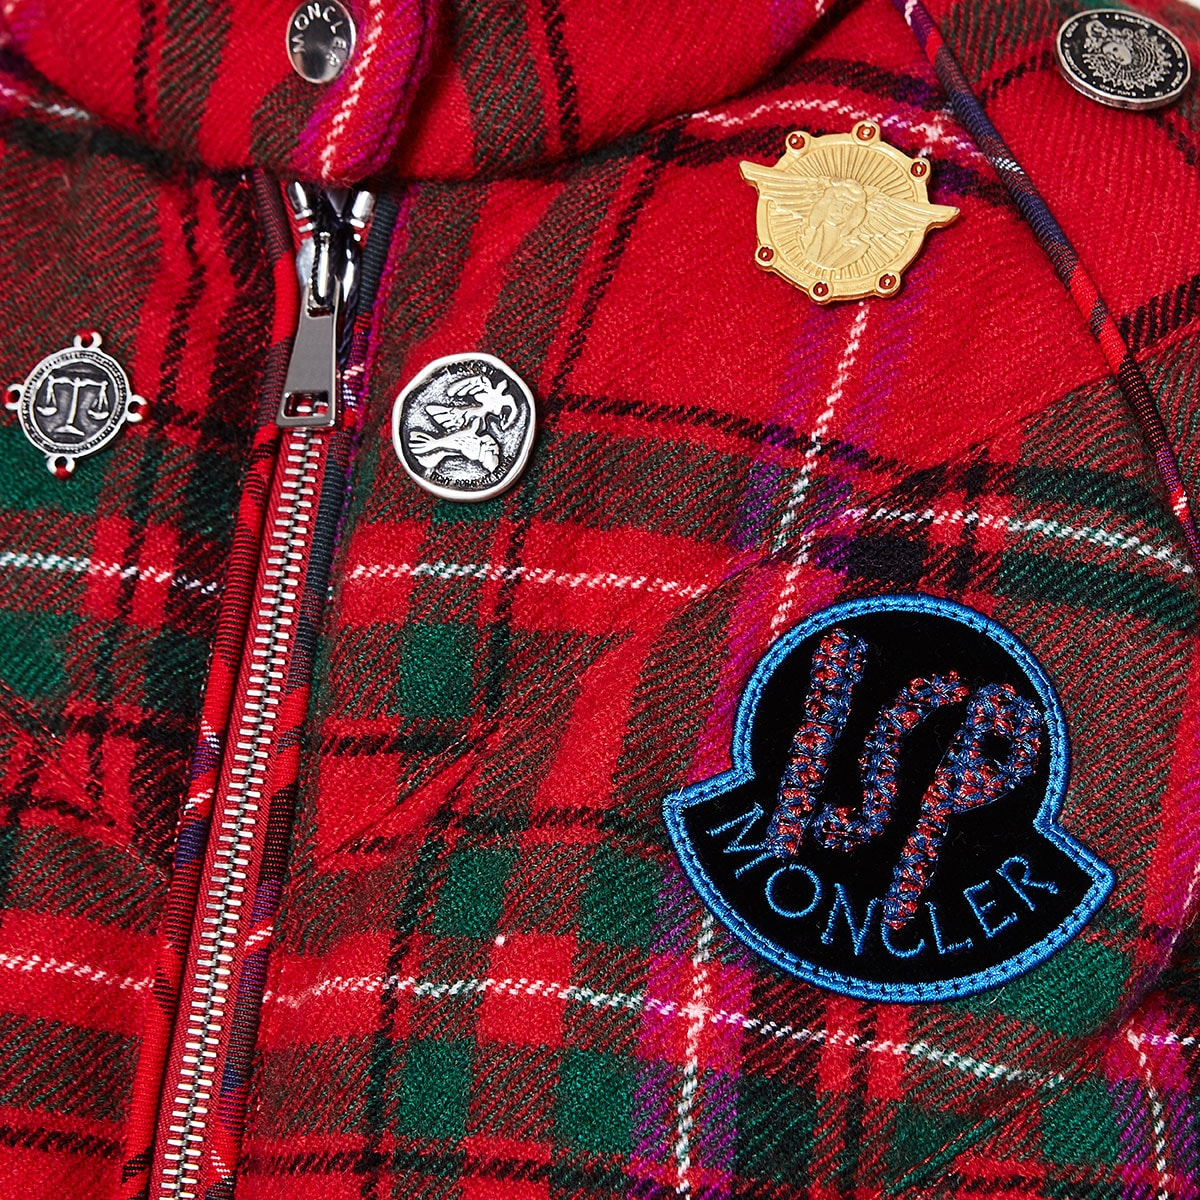 2 Moncler 1952 + Valextra checked puffer jacket